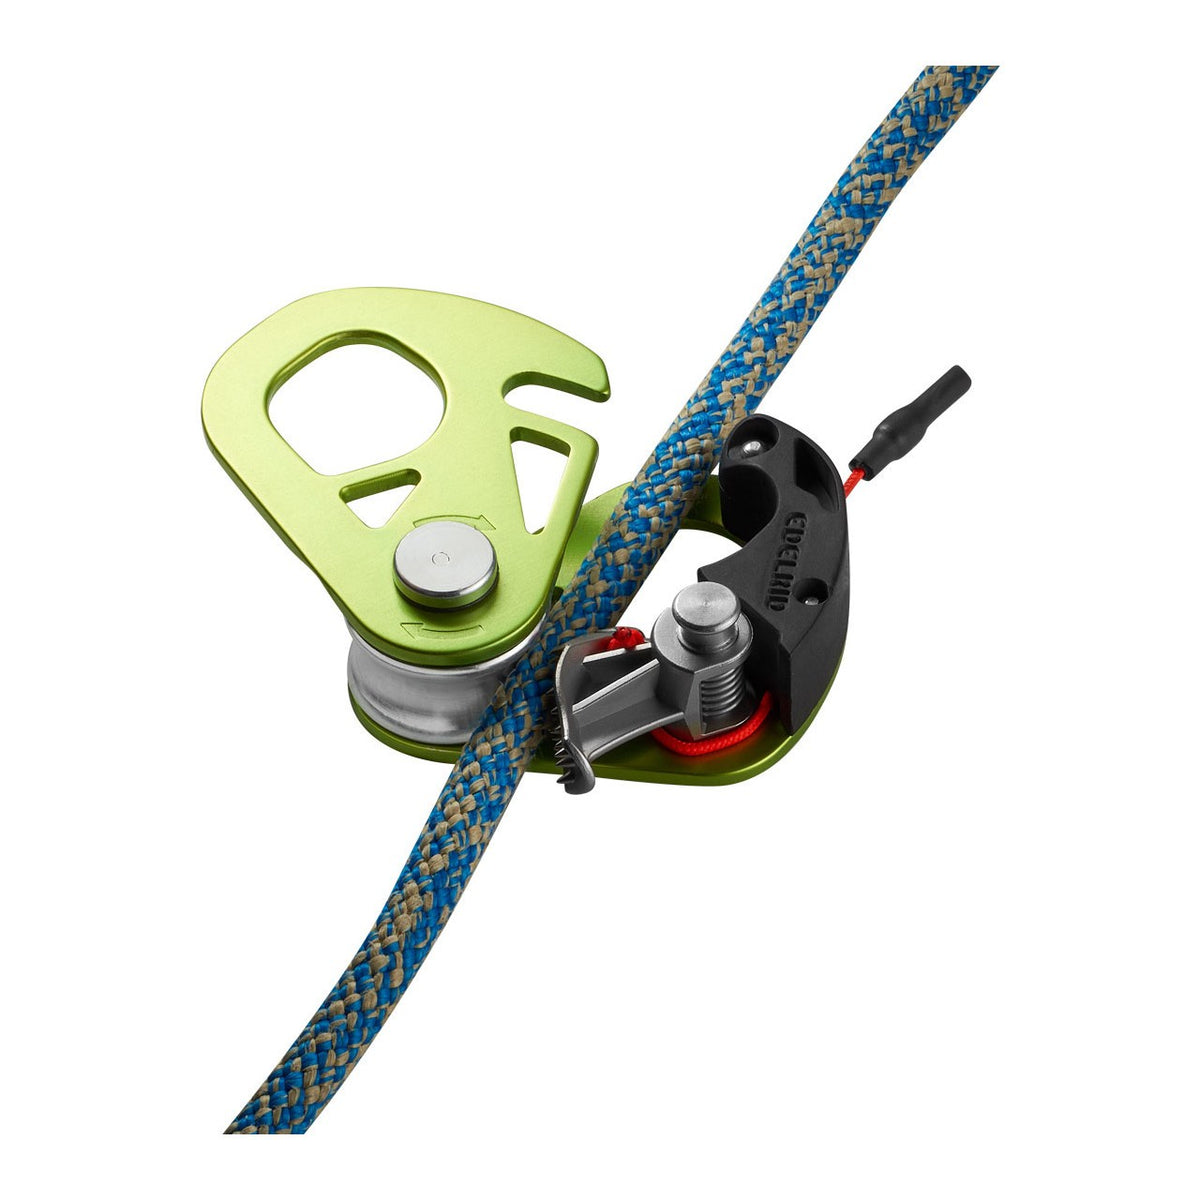 Edelrid Spoc shown with rope being inserted